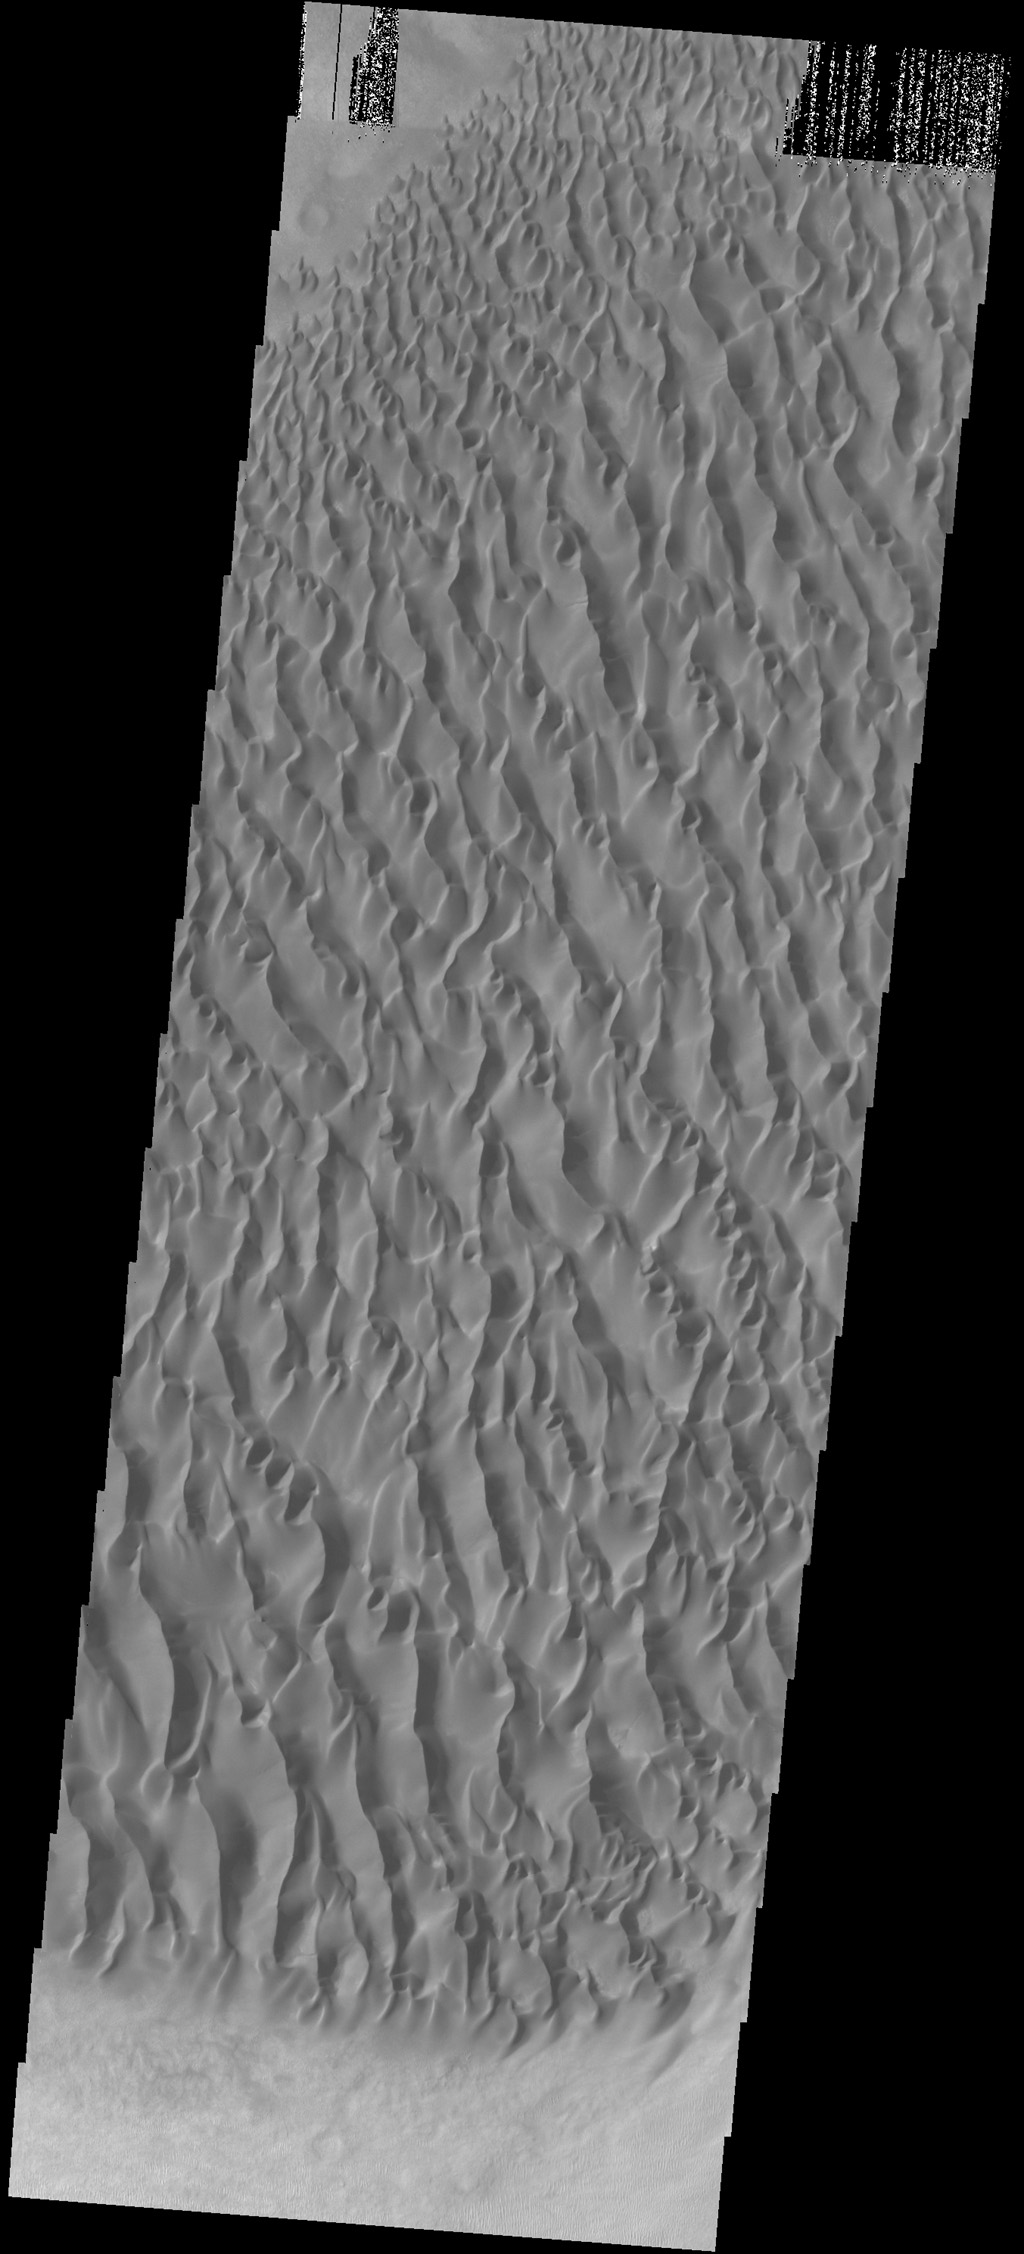 This image captured by NASA's 2001 Mars Odyssey spacecraft shows part of the large sand sheet and sand dunes on the floor of Proctor Crater.